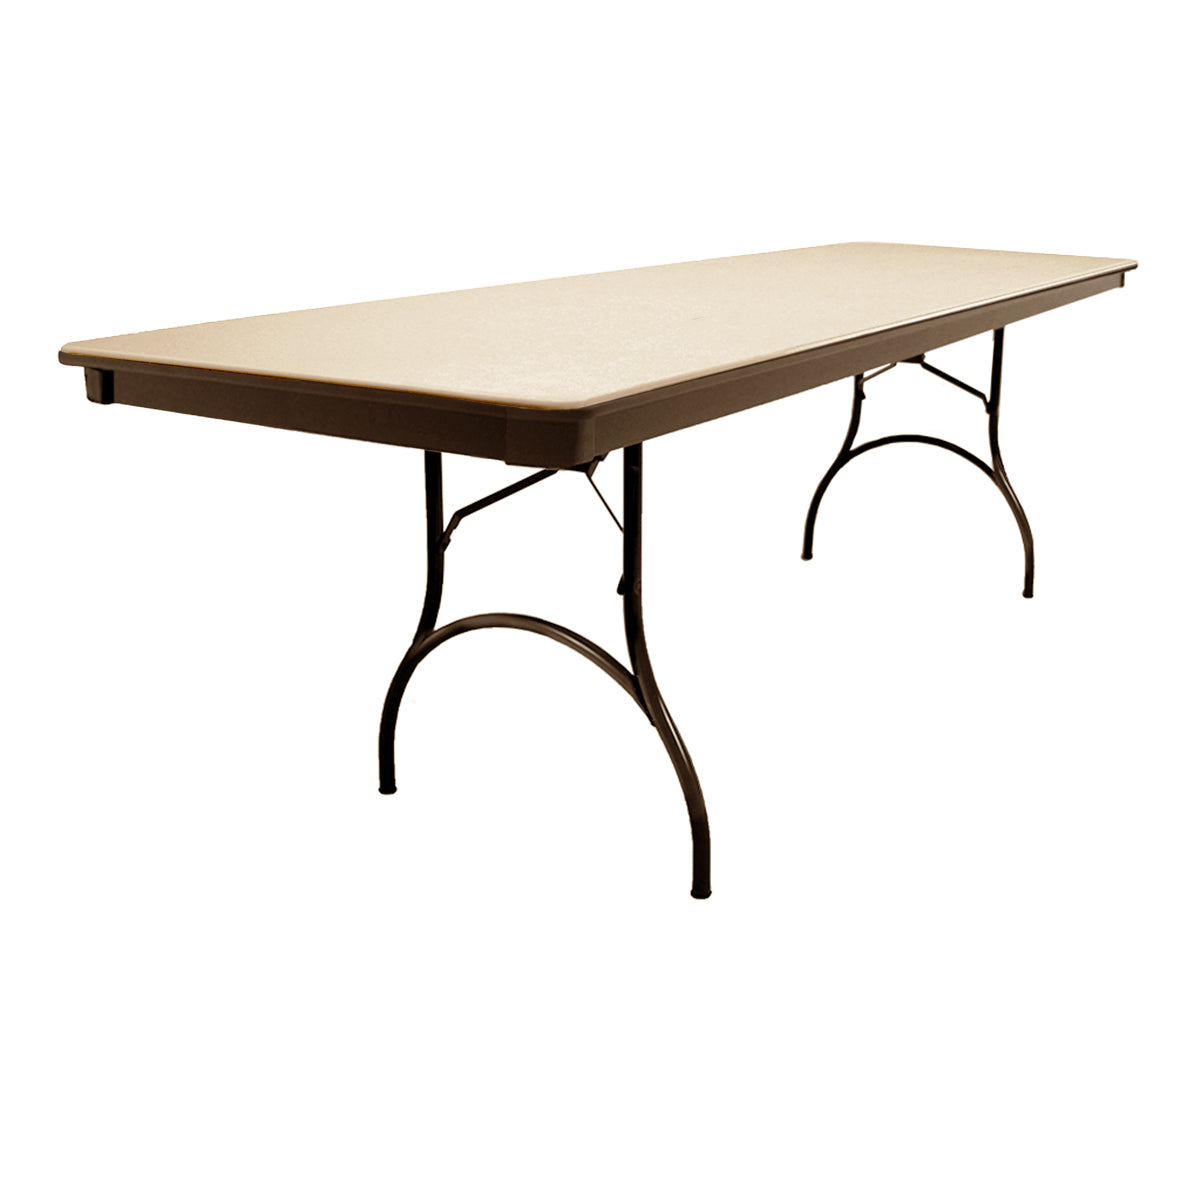 "MityLite ABS Plastic 30""x96"" Folding Table - Beige"